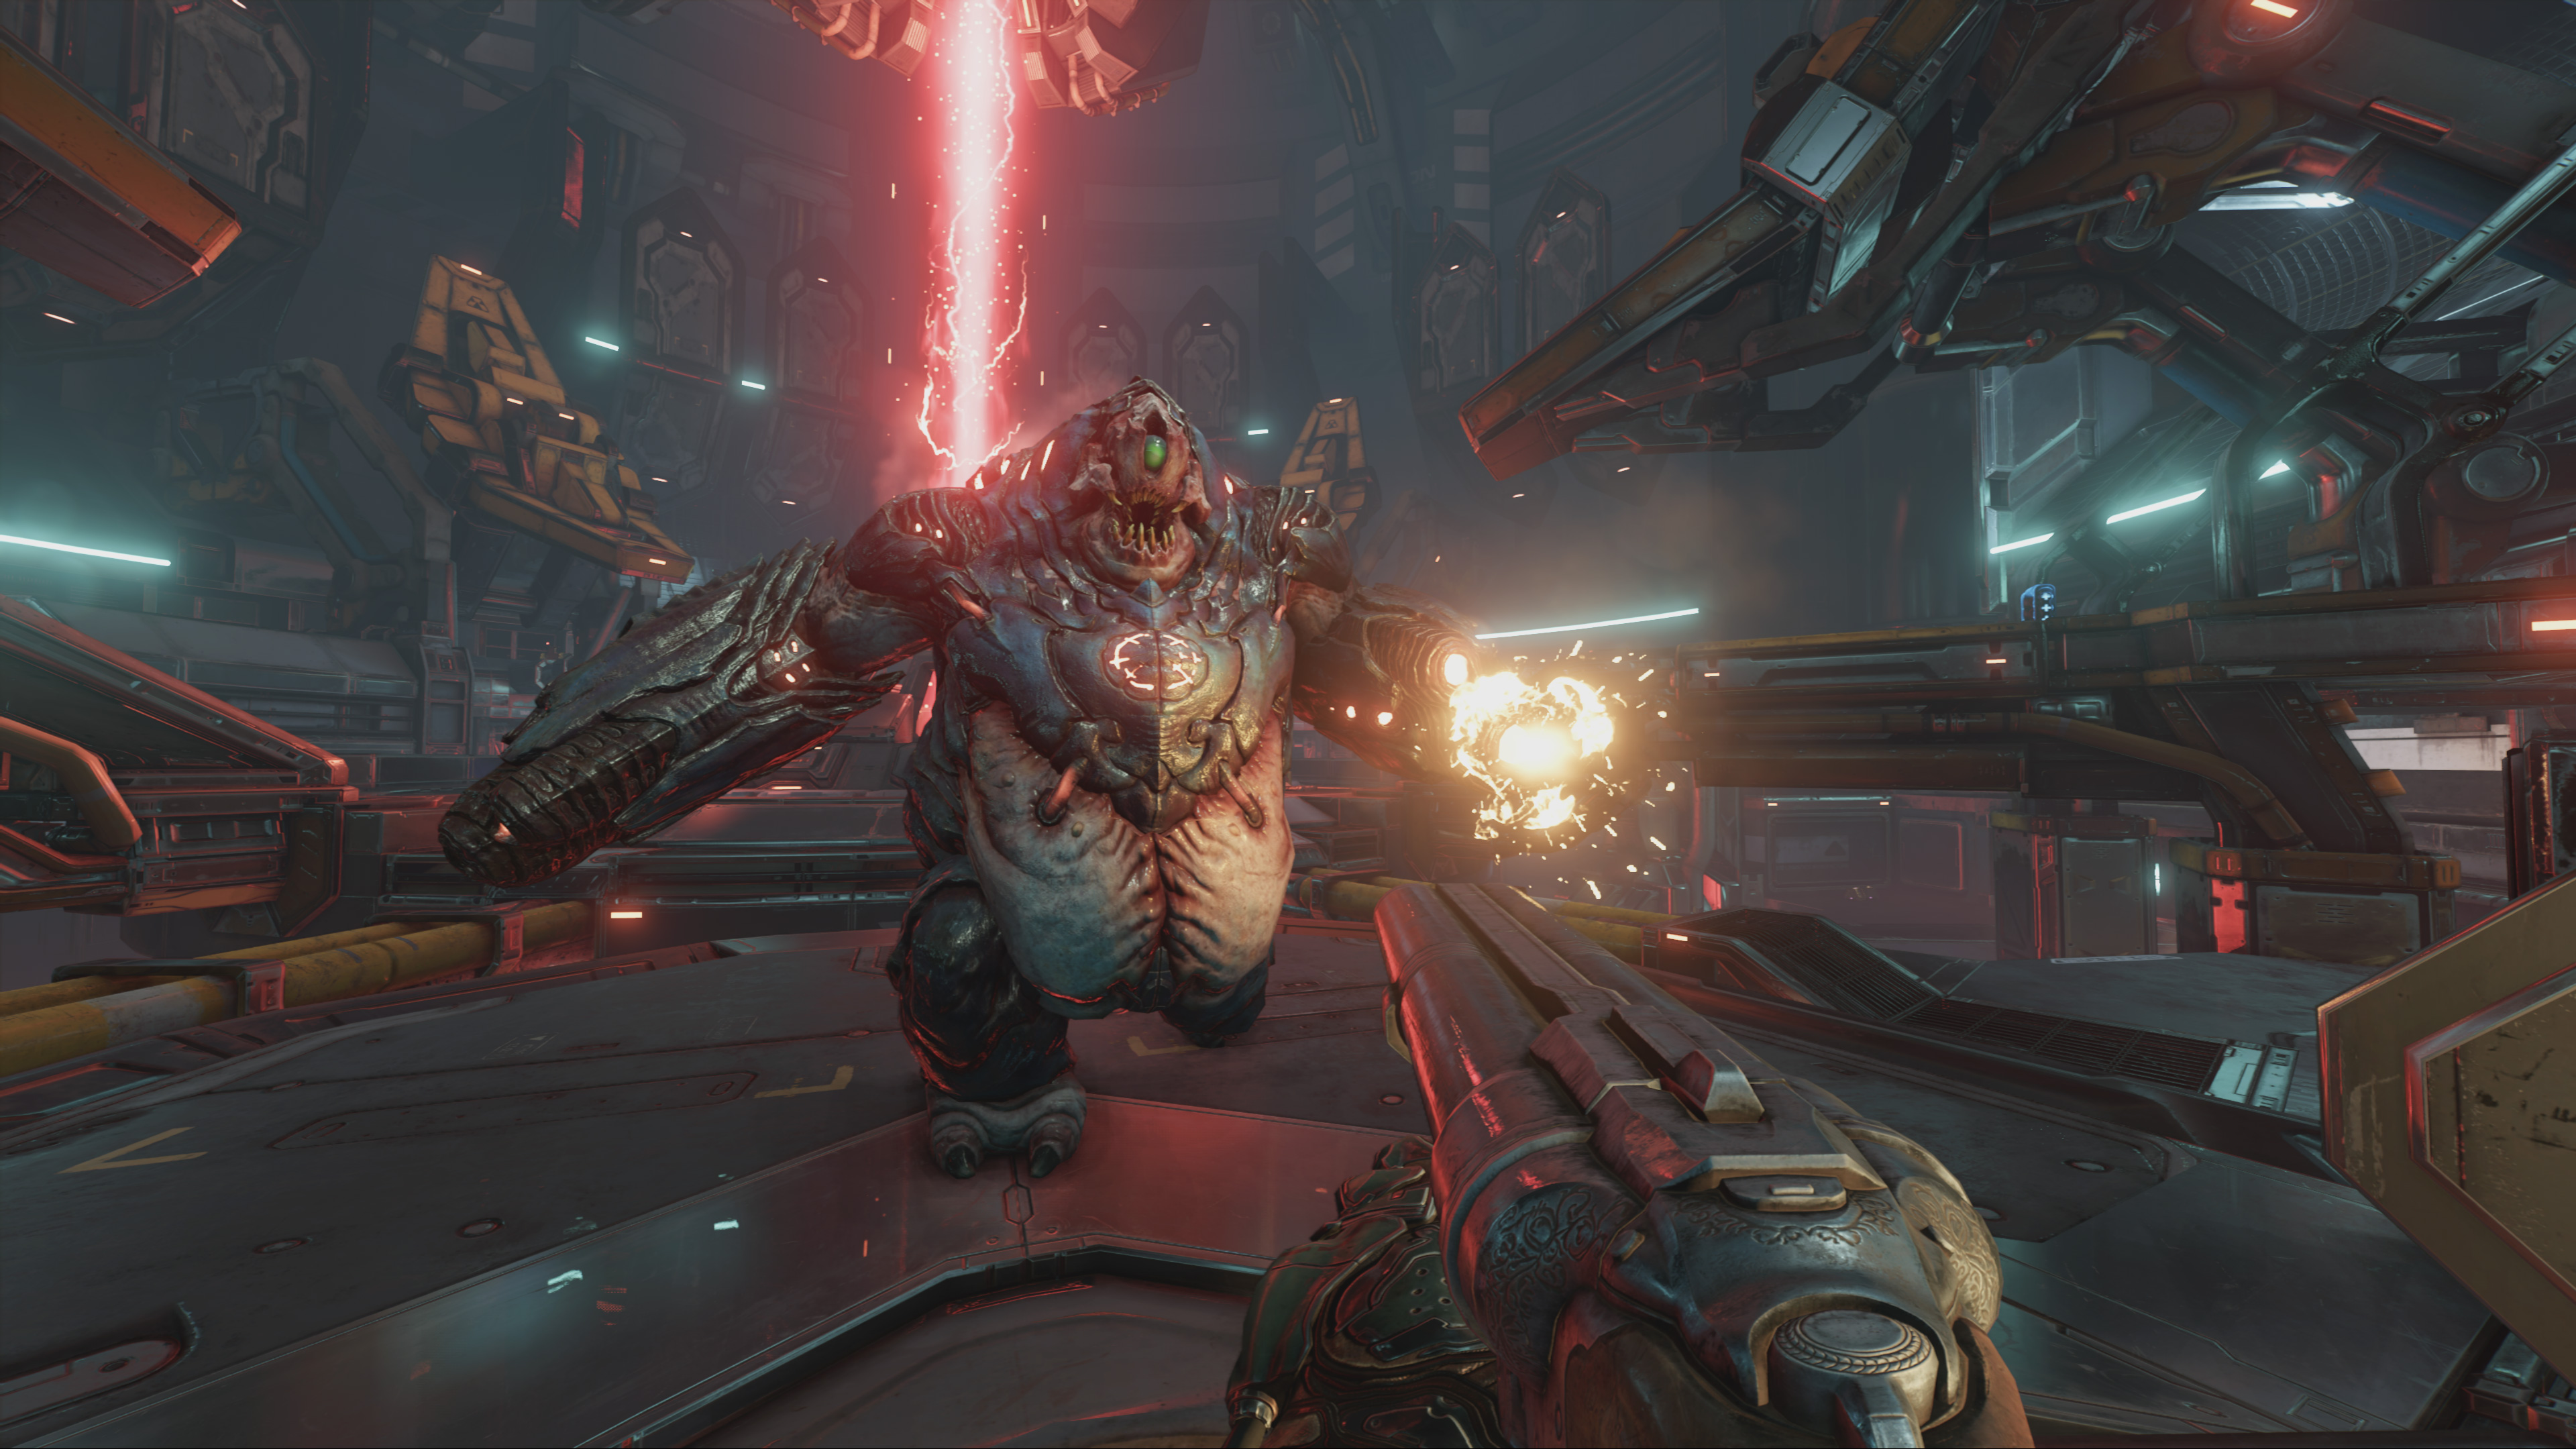 Experience DOOM in 4K - Now Available